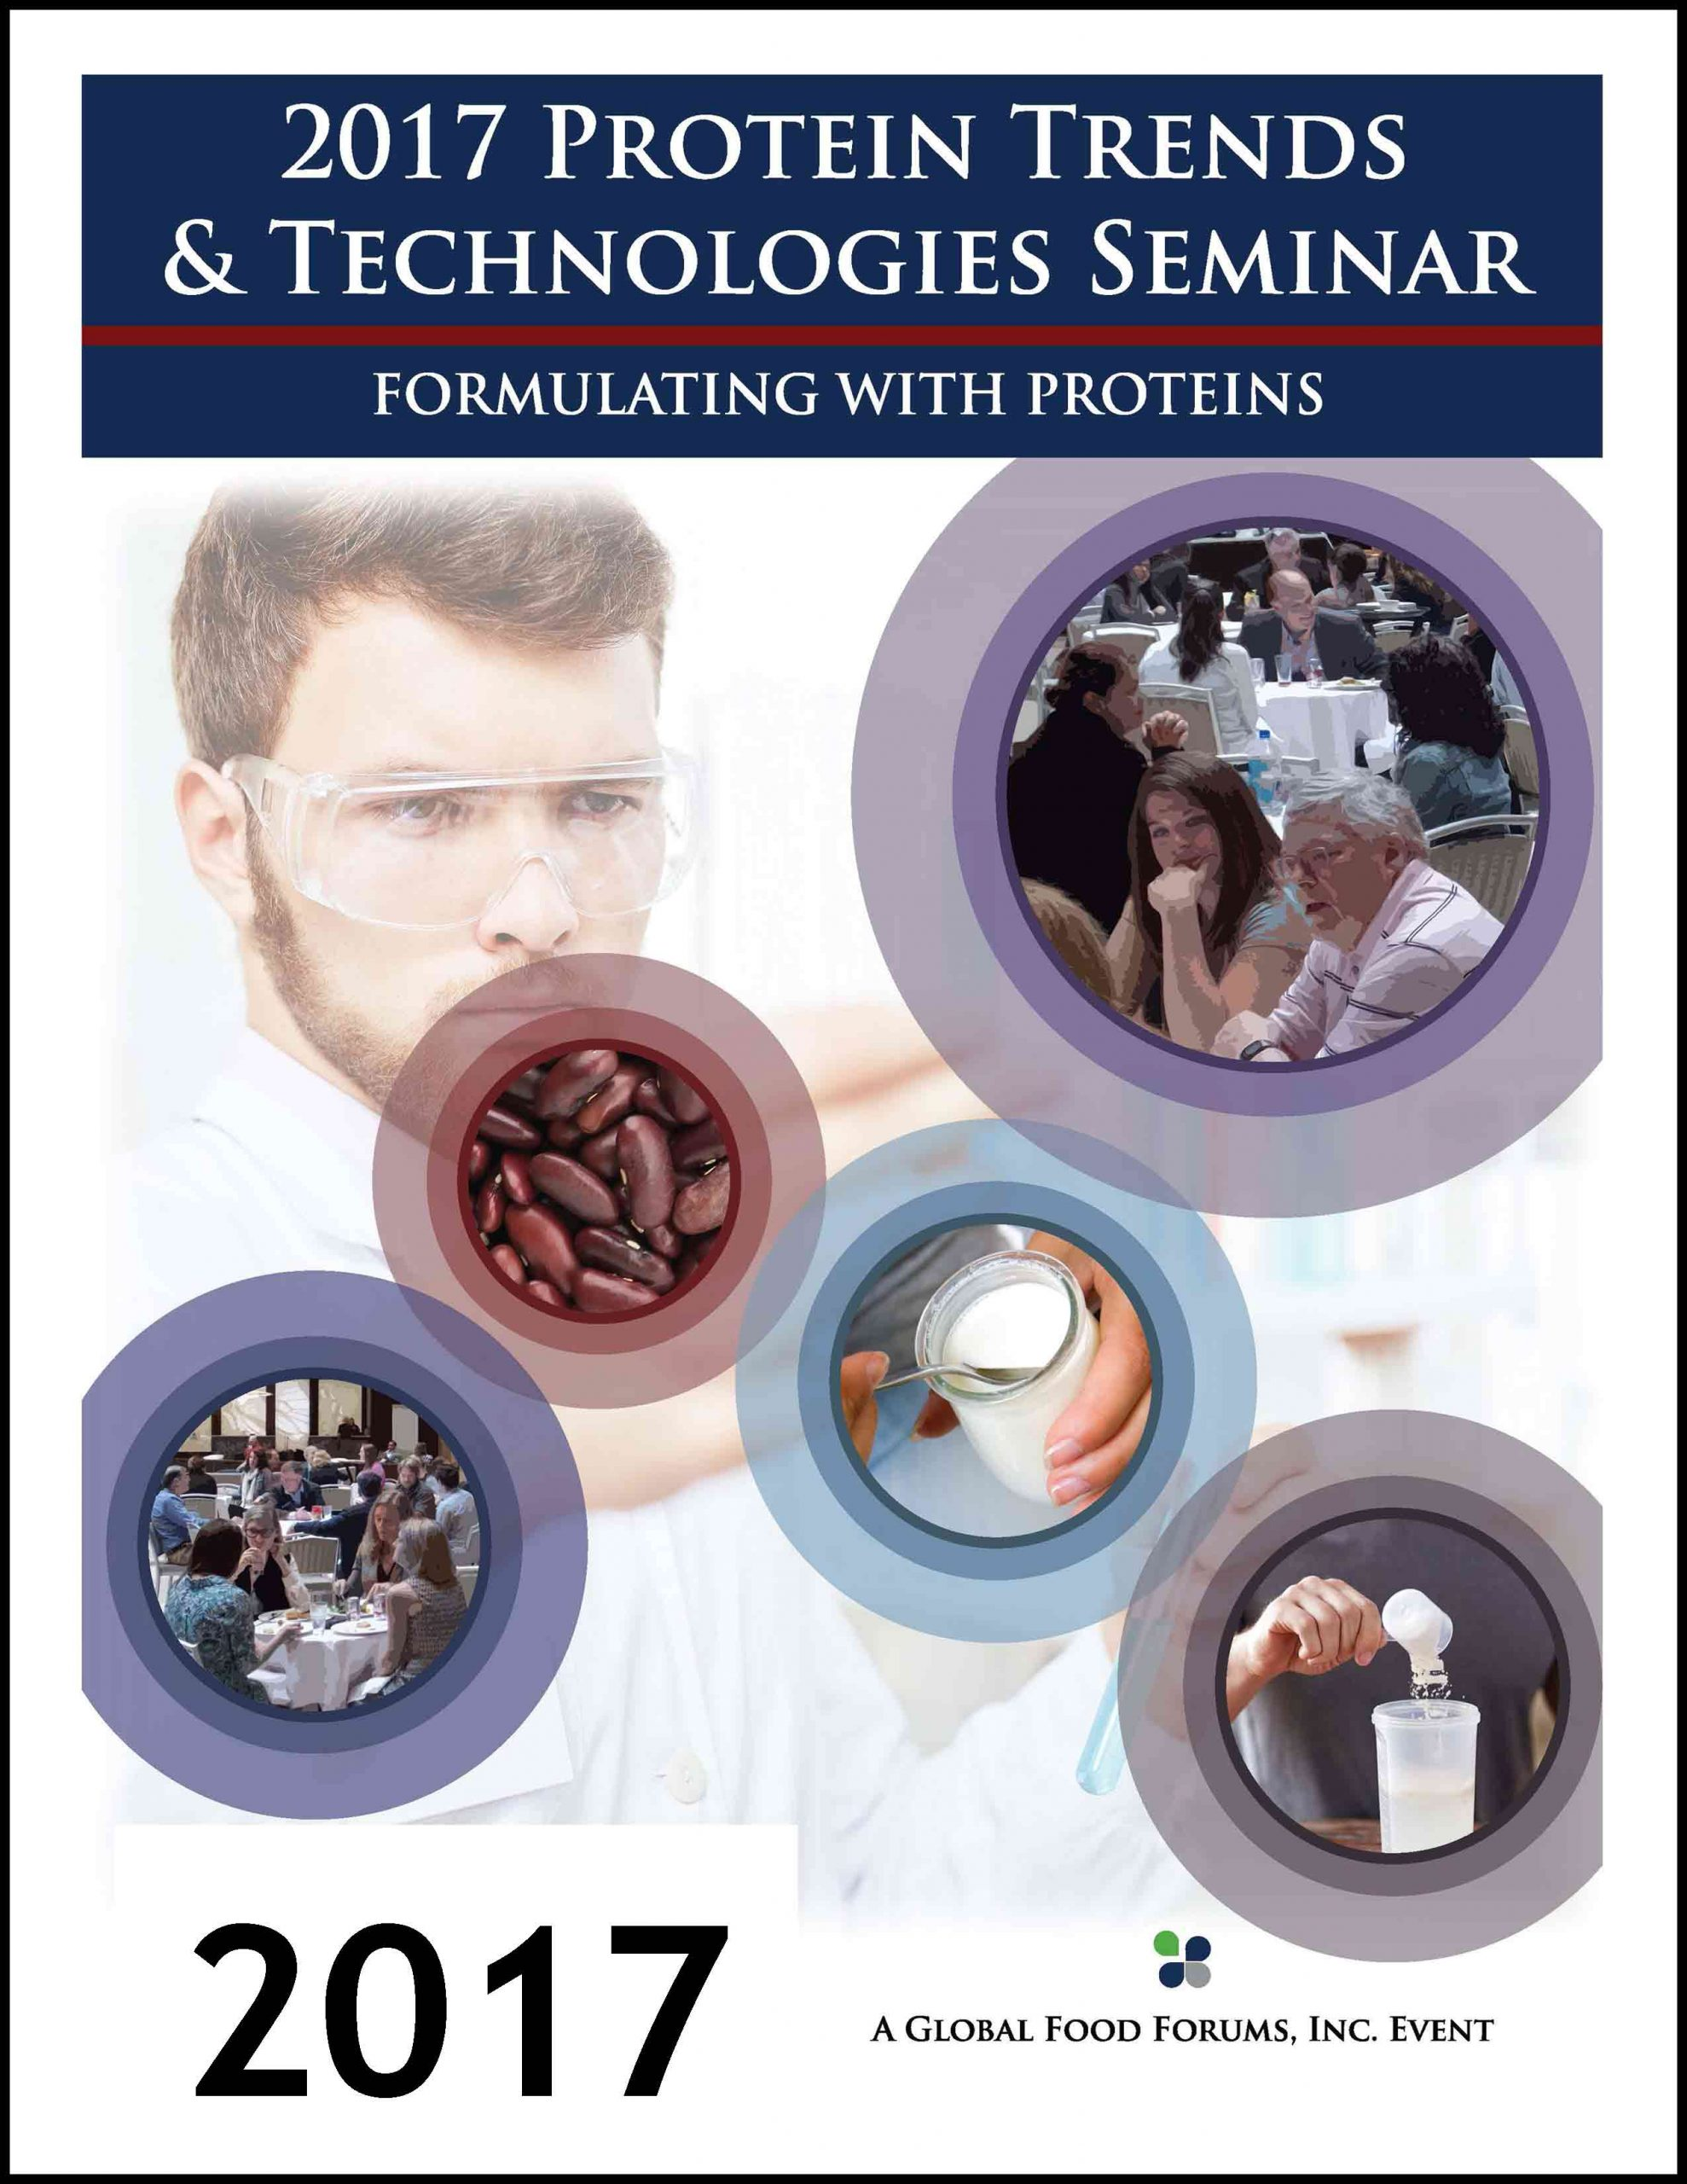 2017 Protein Trends Technologies Formulaing Magazine_COVER